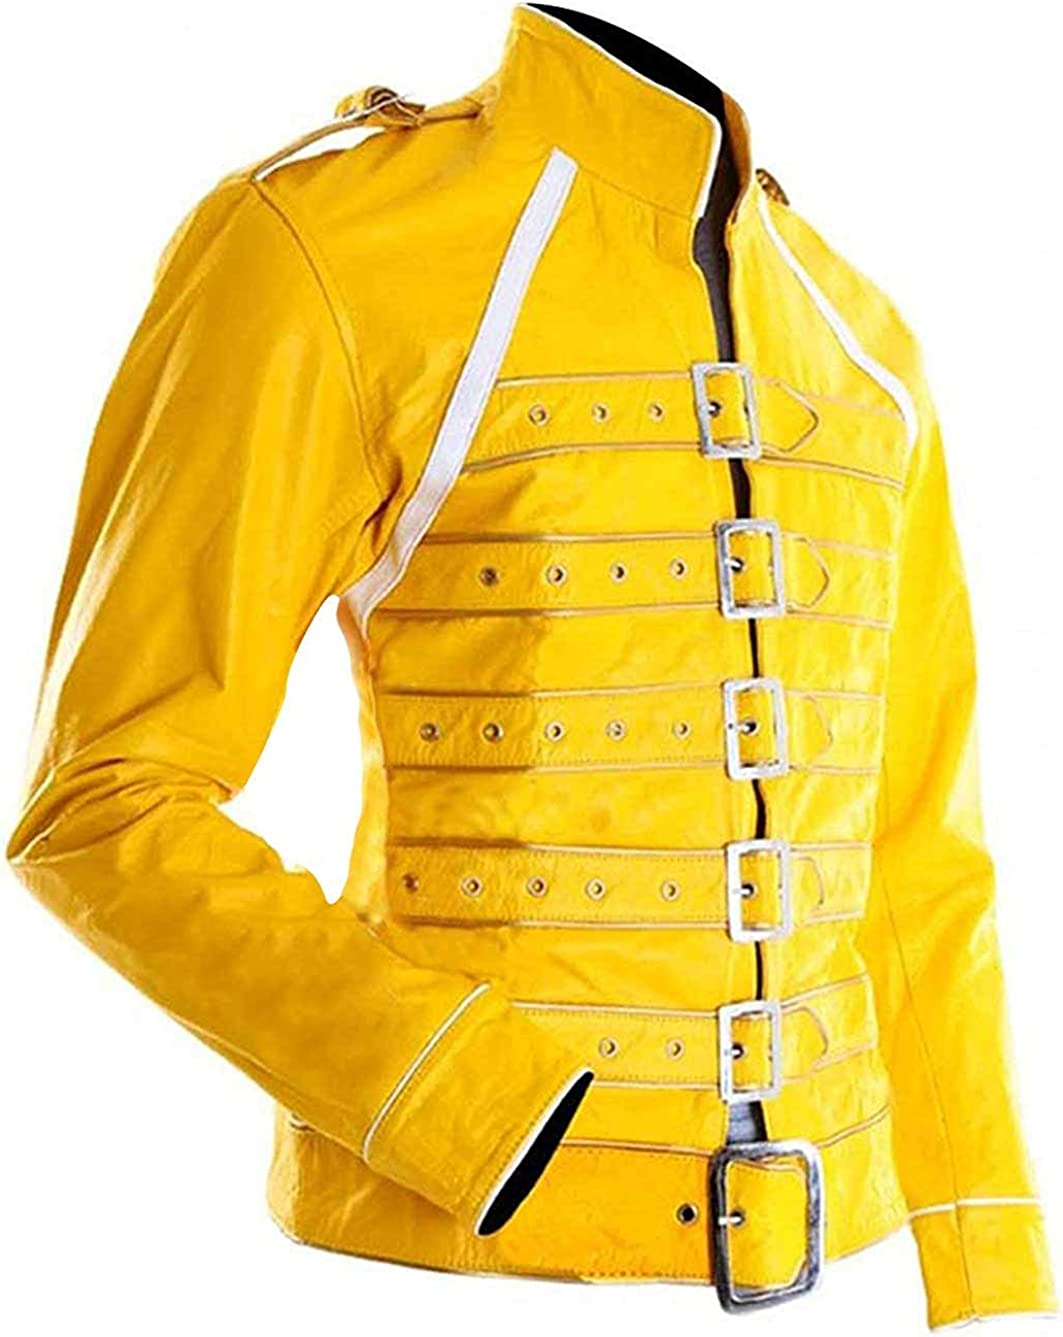 STB-Fashions Freddie Mercury Queen Concert Belted Motorcycle Yellow Jacket for Women Yellow - Faux Jacket